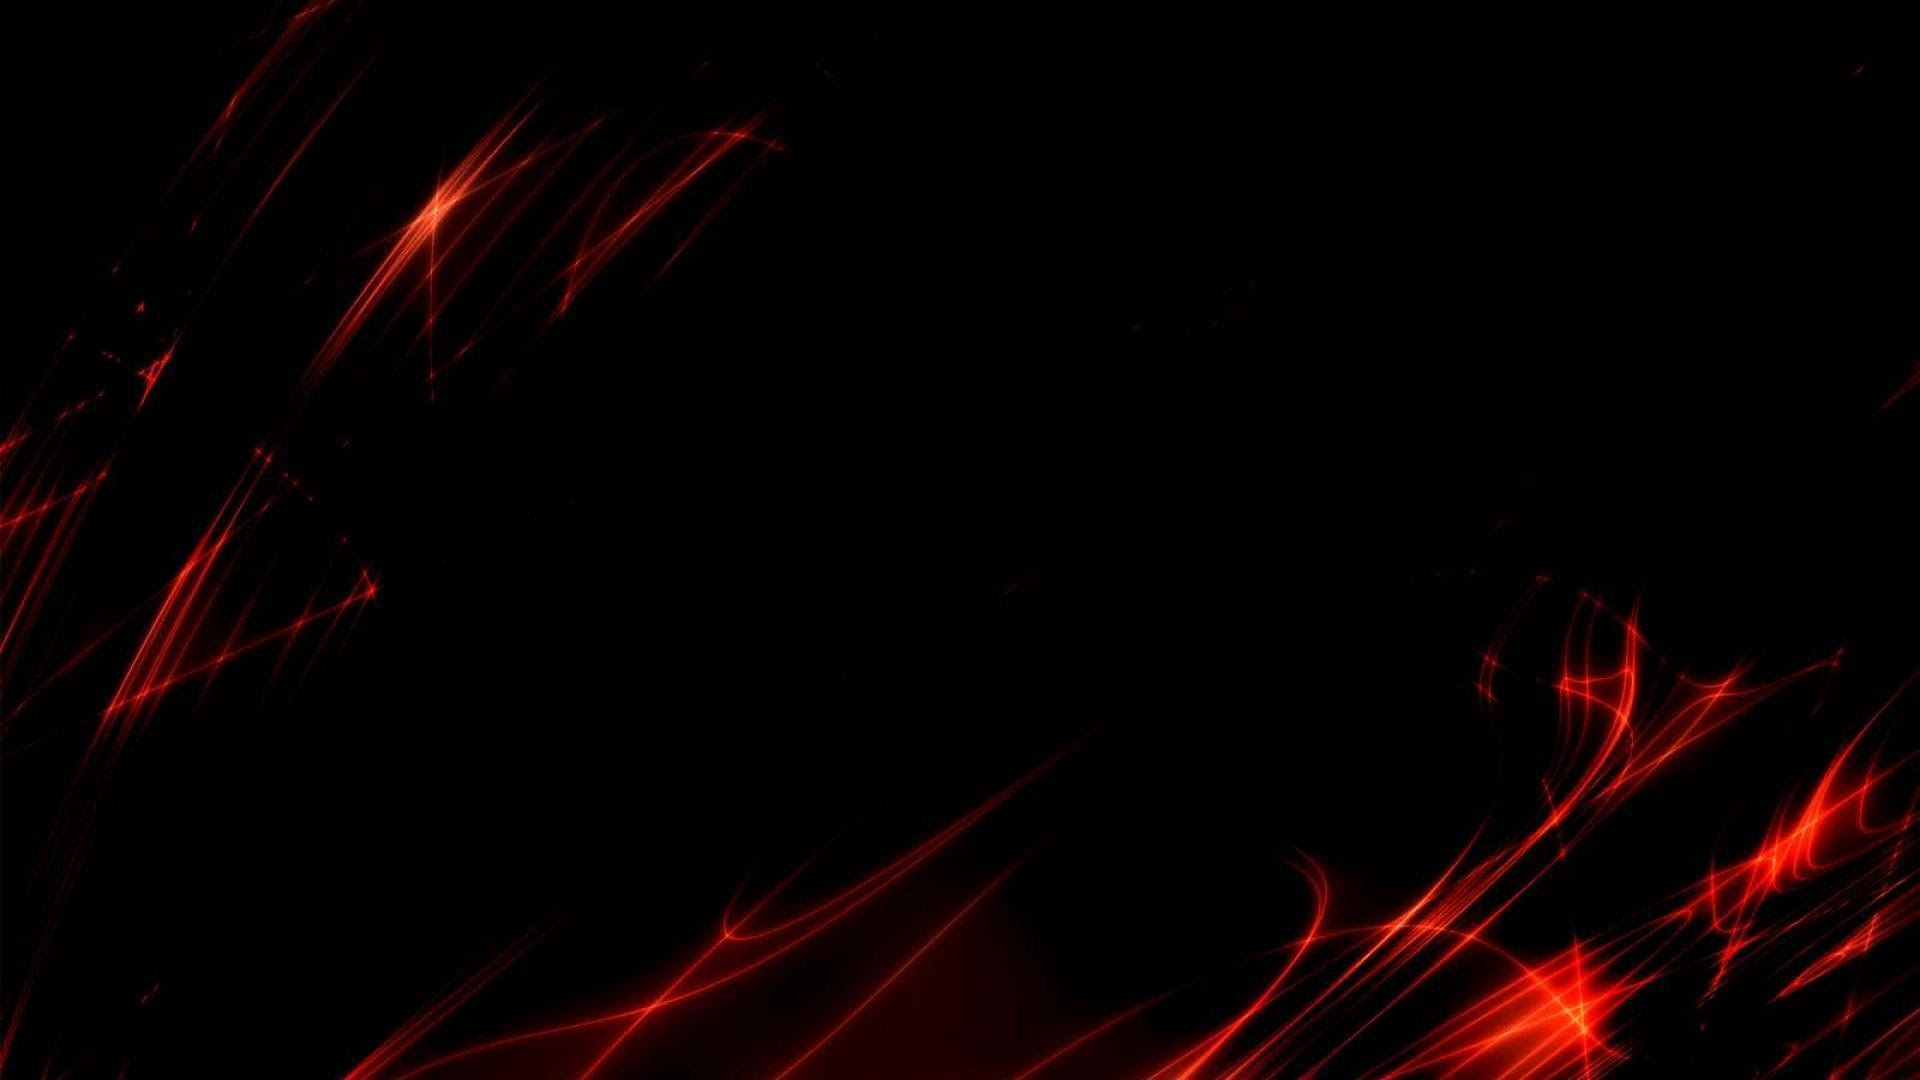 Download 200 Wallpaper Black Red Shards  Paling Keren